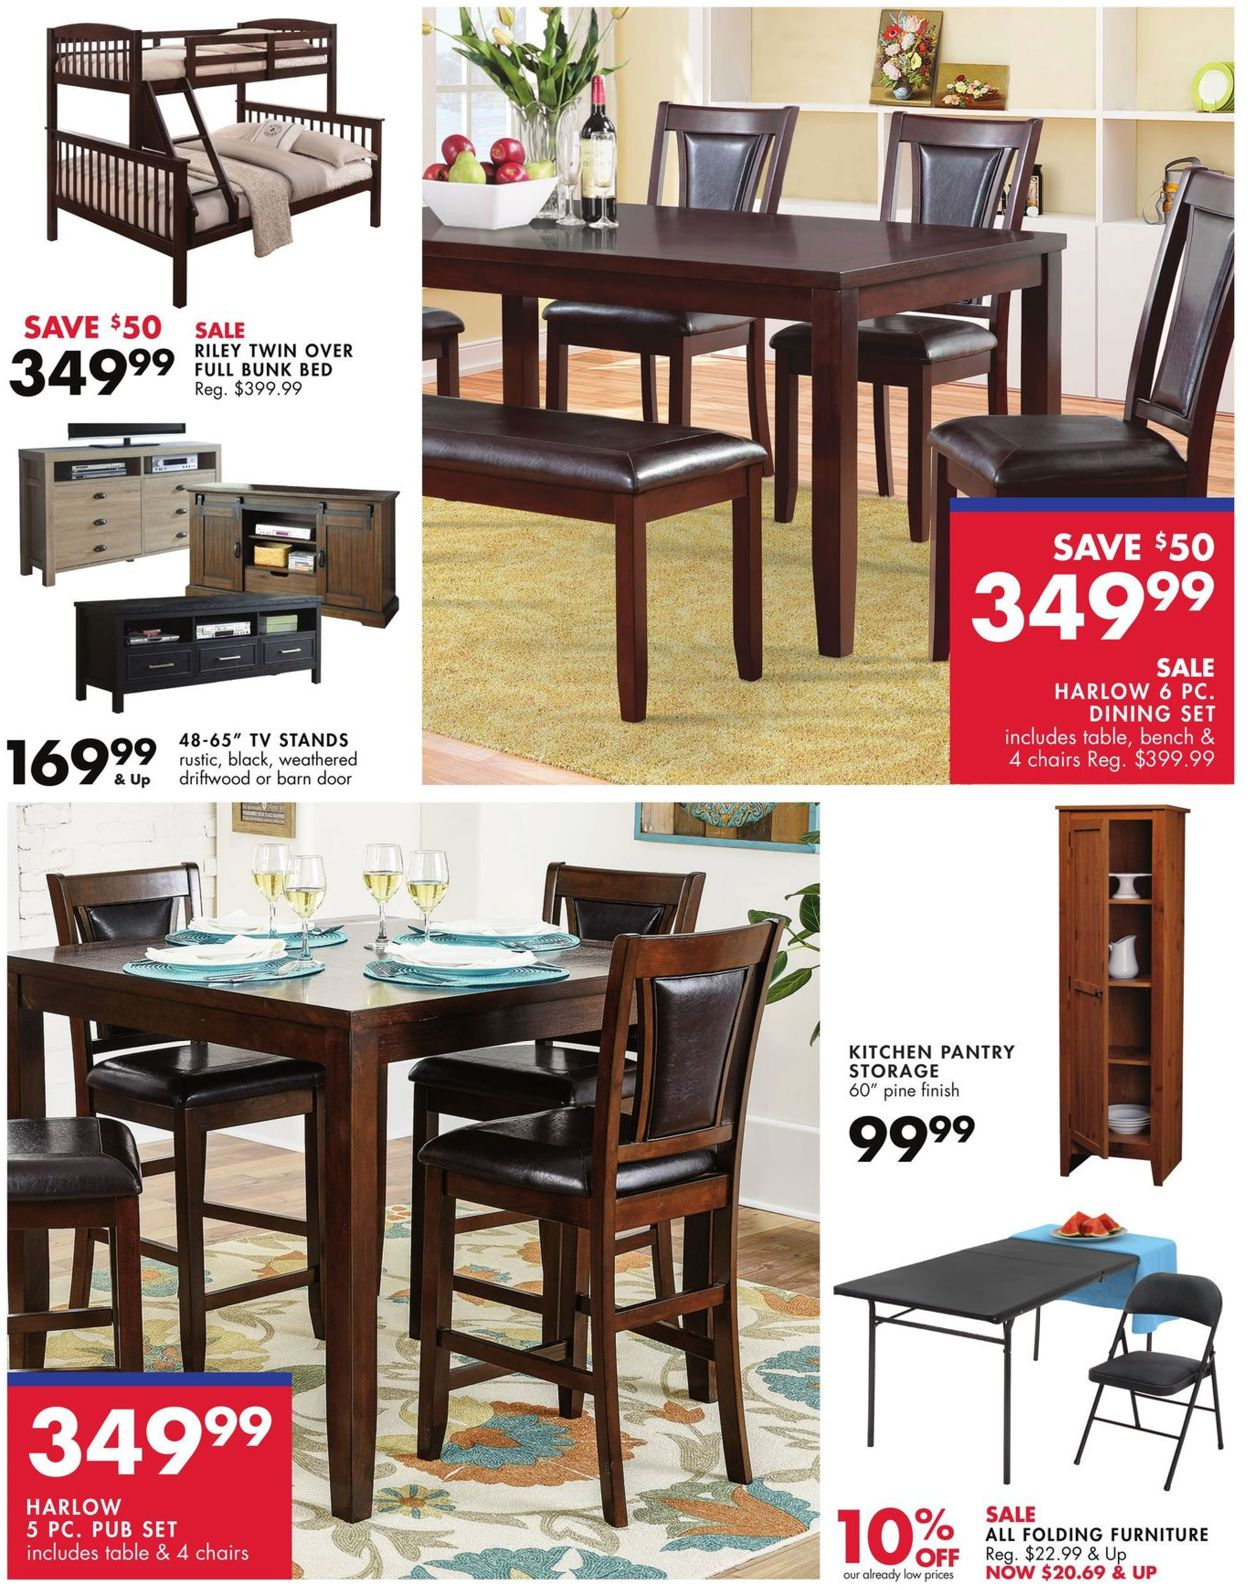 Big Lots Current weekly ad 9/9   9/9/299 [9]   frequent ads.com